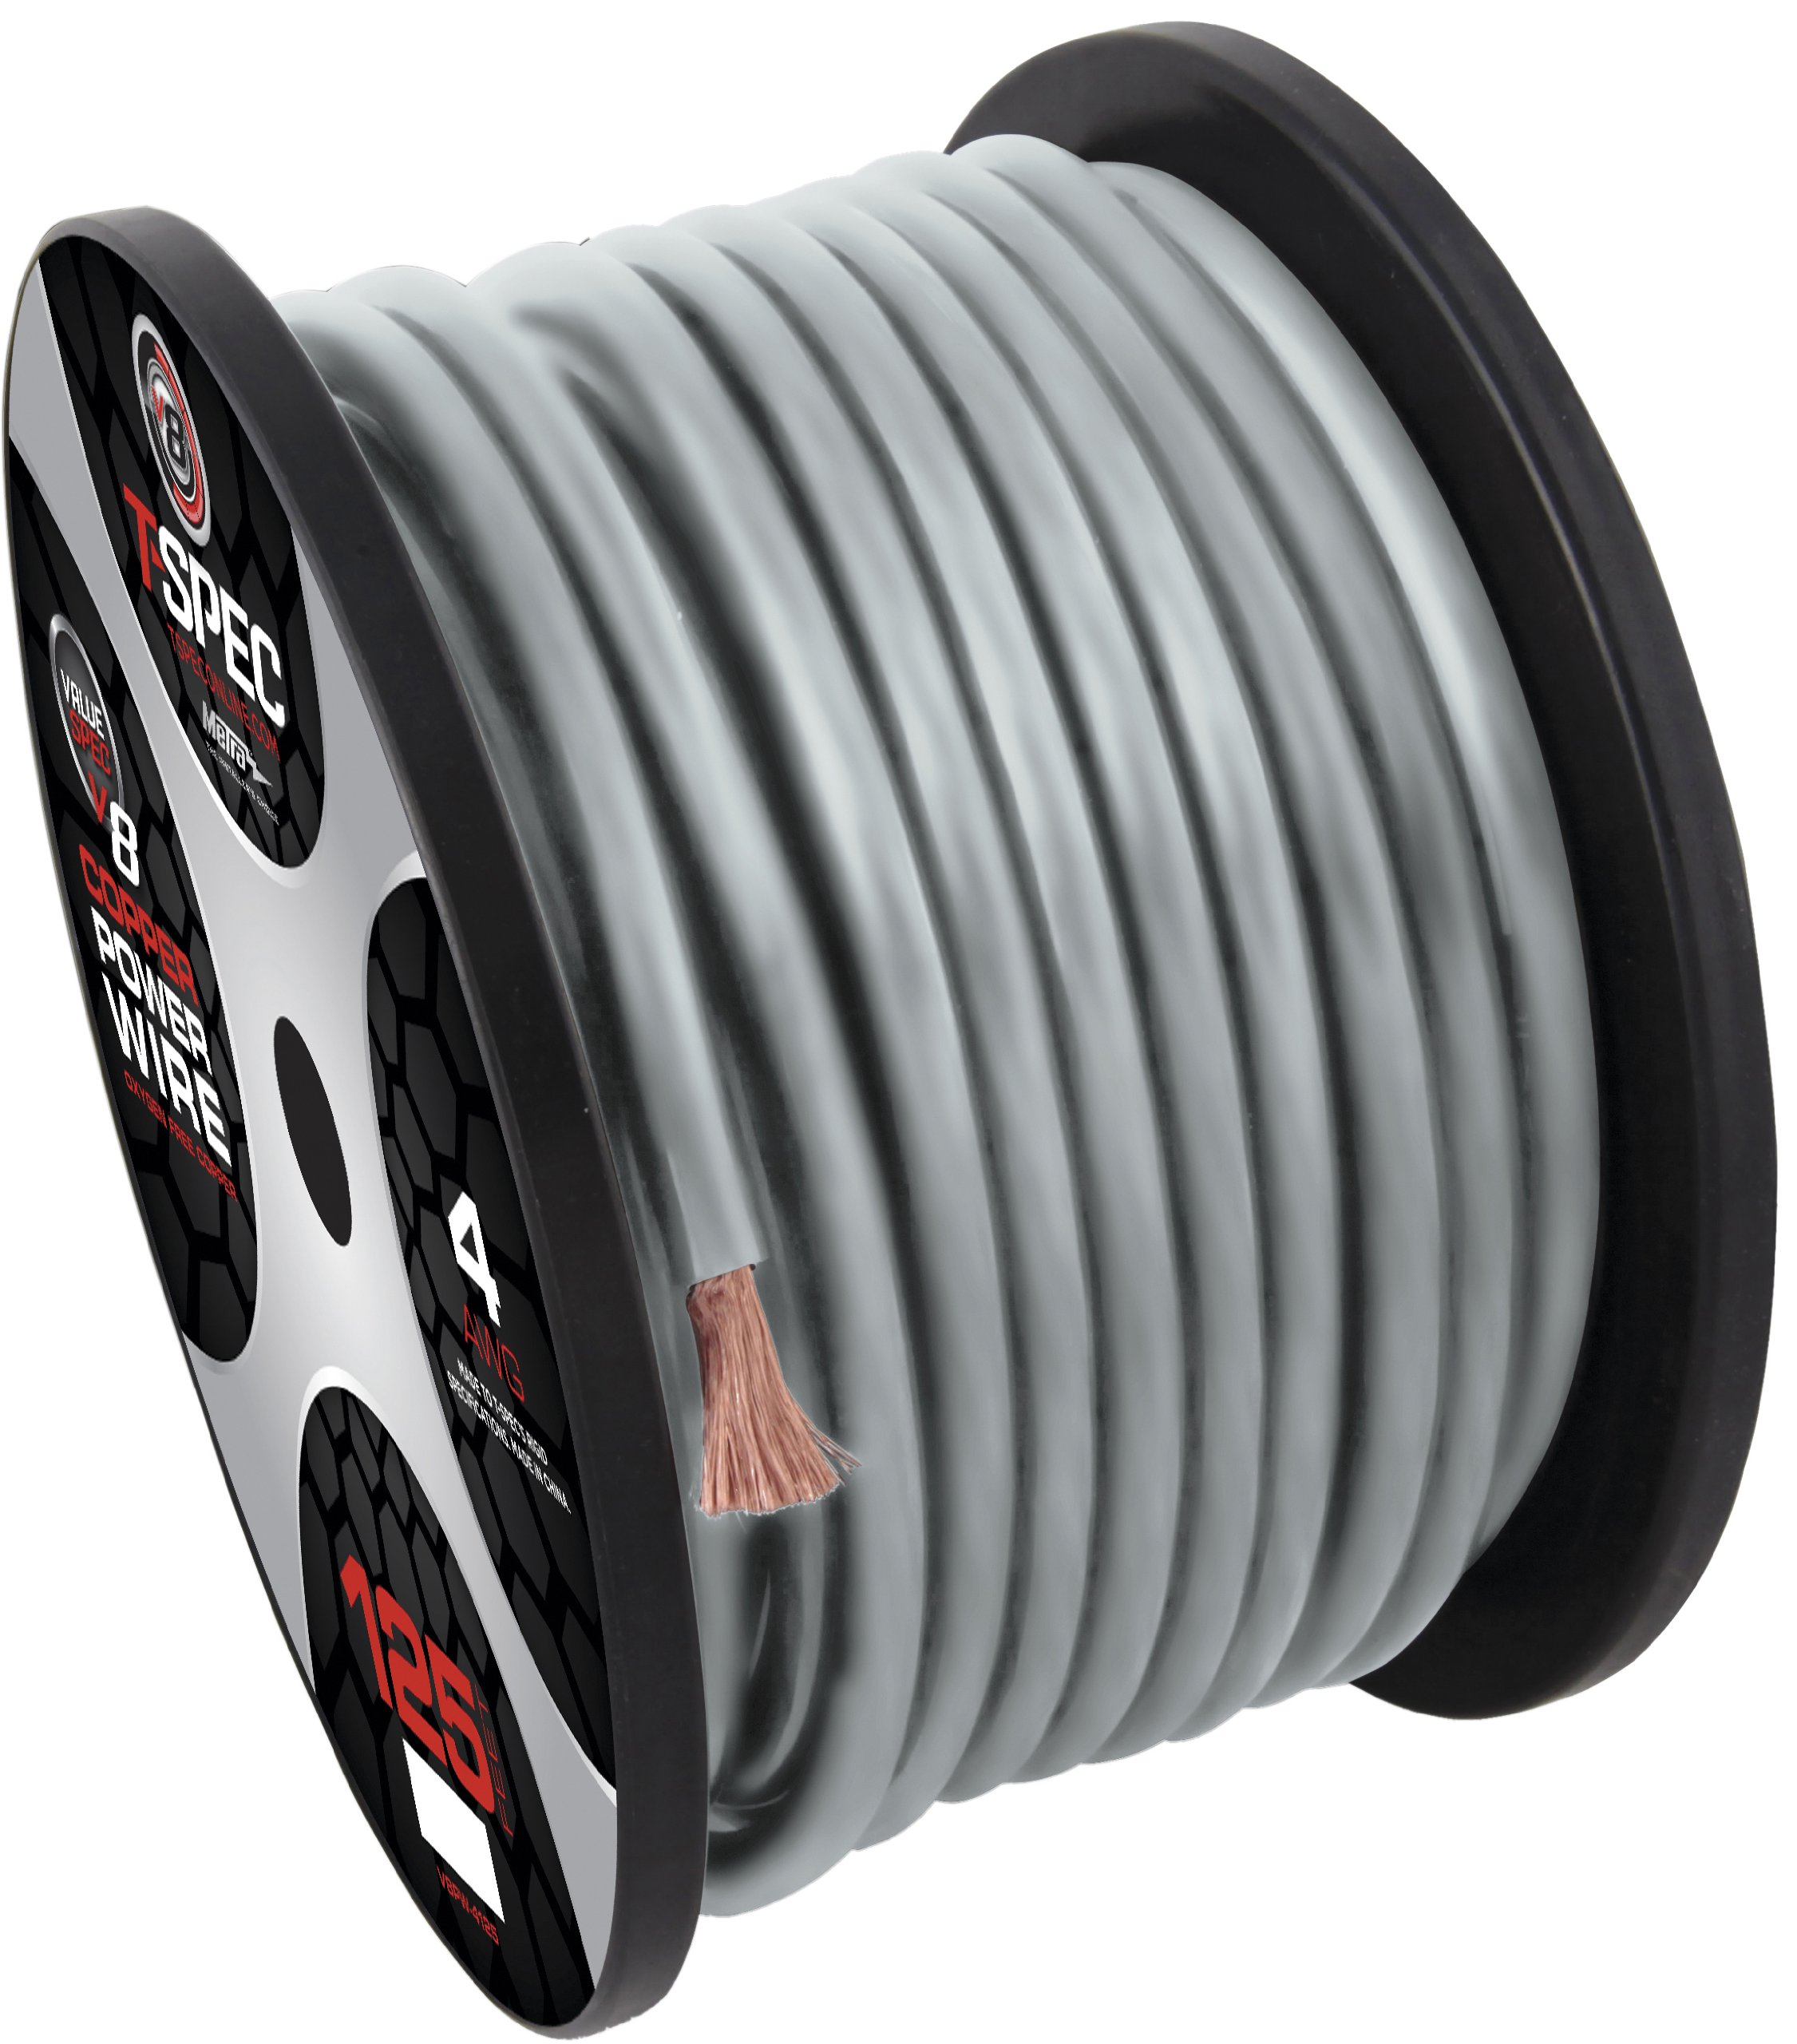 T-Spec V8GW-475 V10 Series Power Wire Spools 4 AWG, 75-Feet